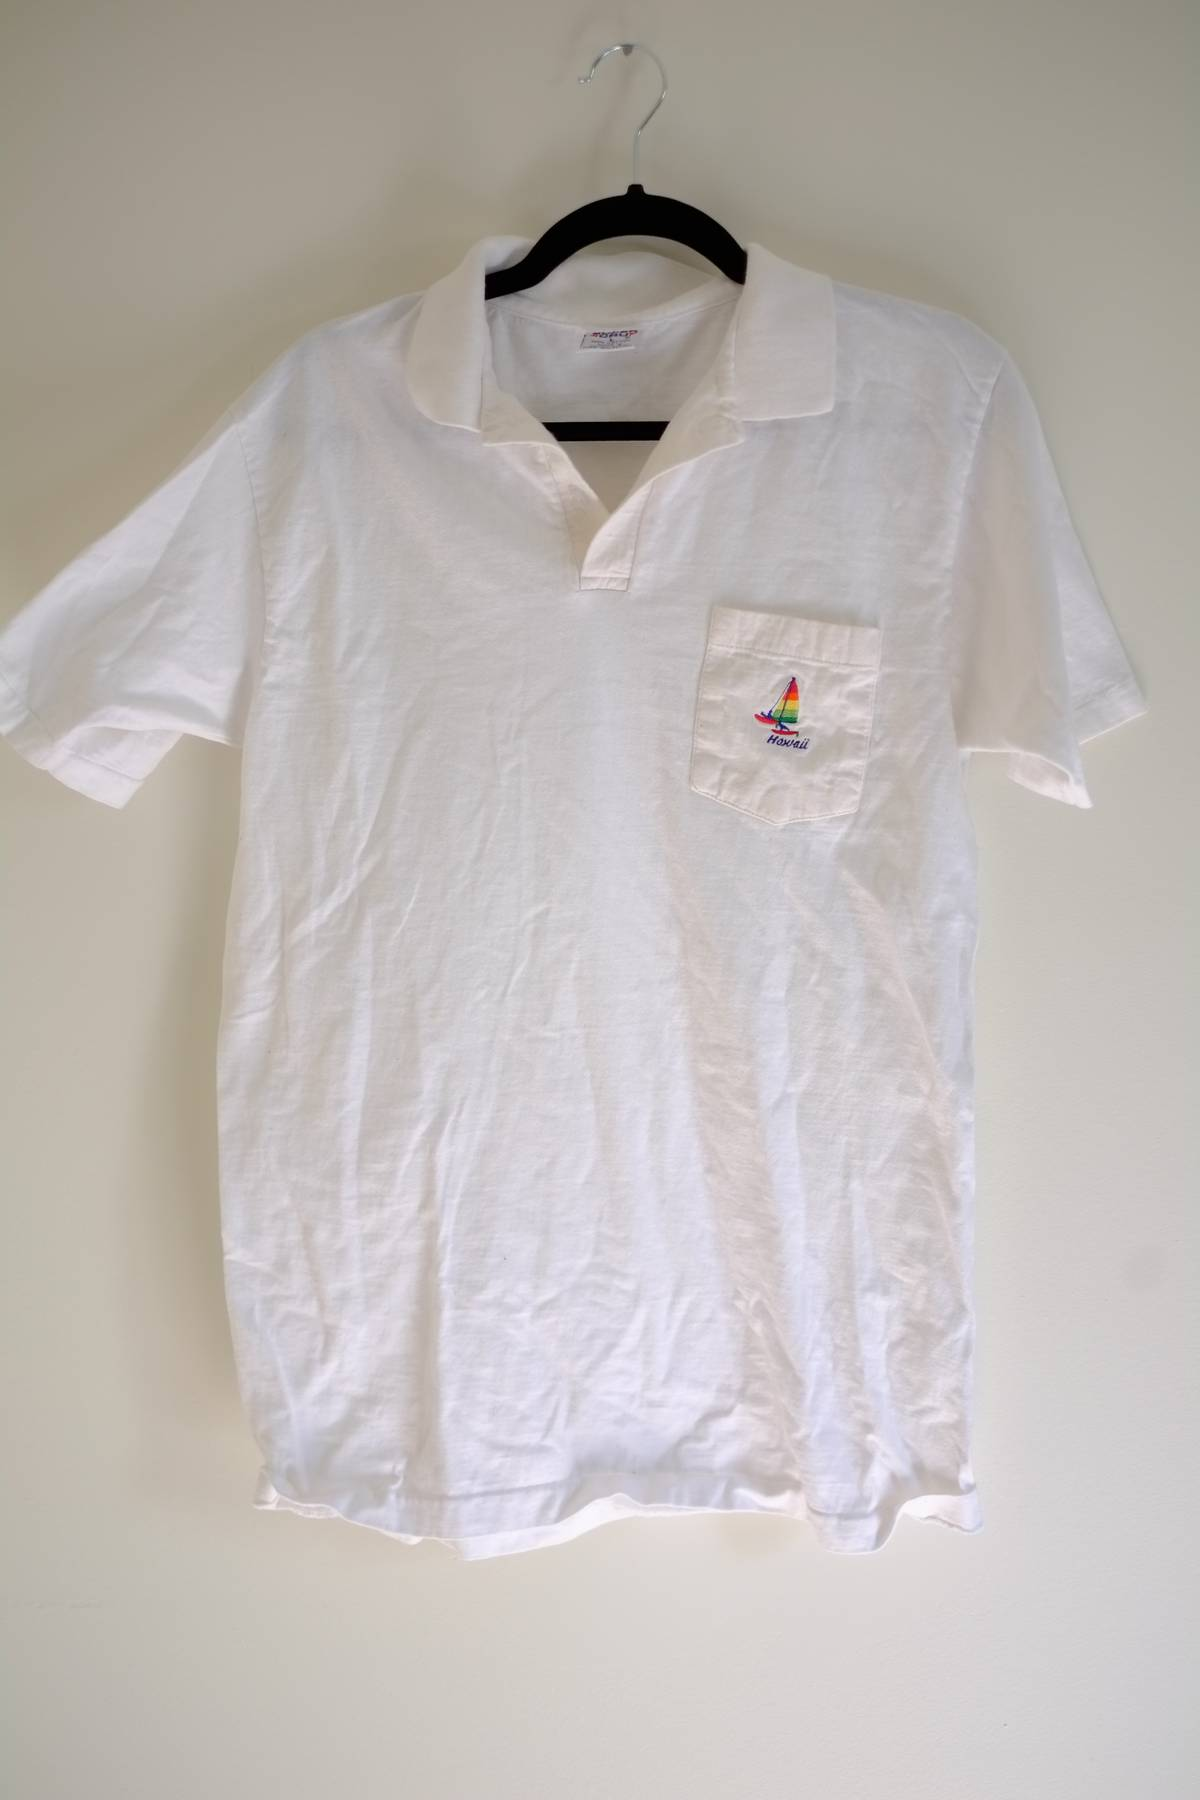 Vintage Hawaii Embroidered Collared Shirt Size M Polos For Sale